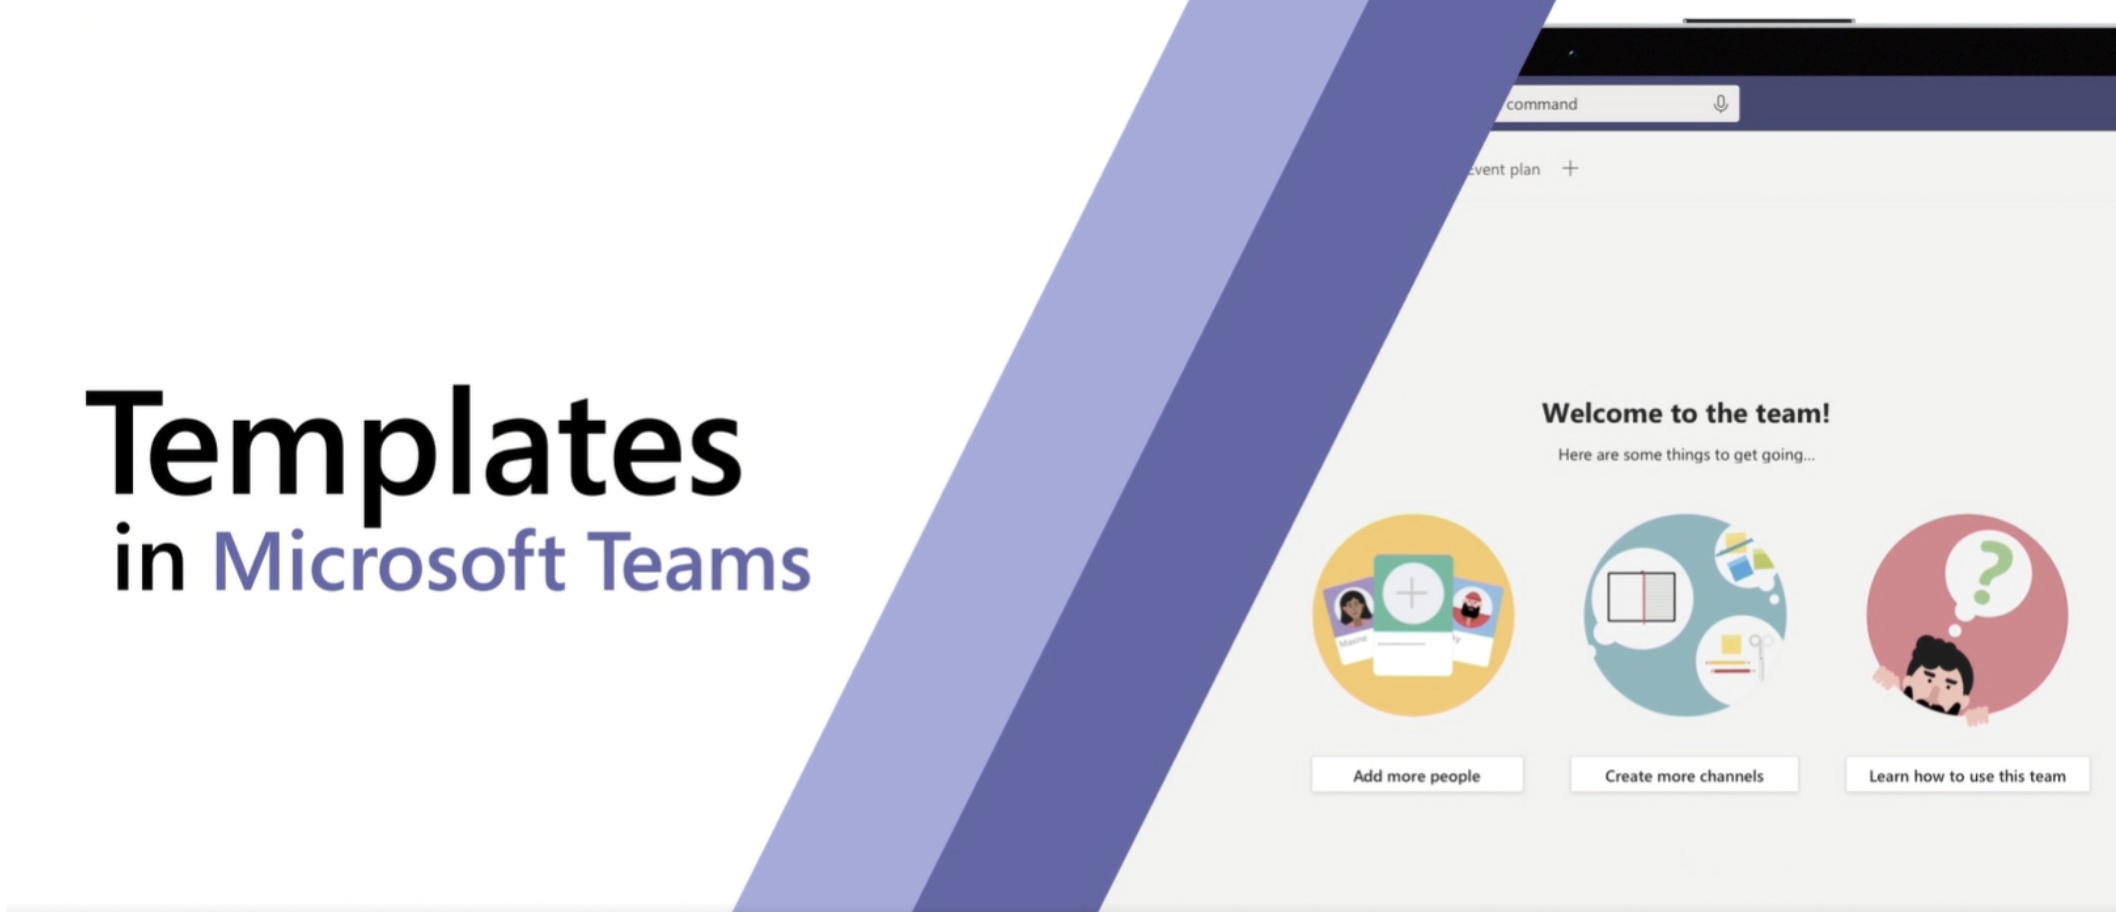 Microsoft Announce Templates in Teams